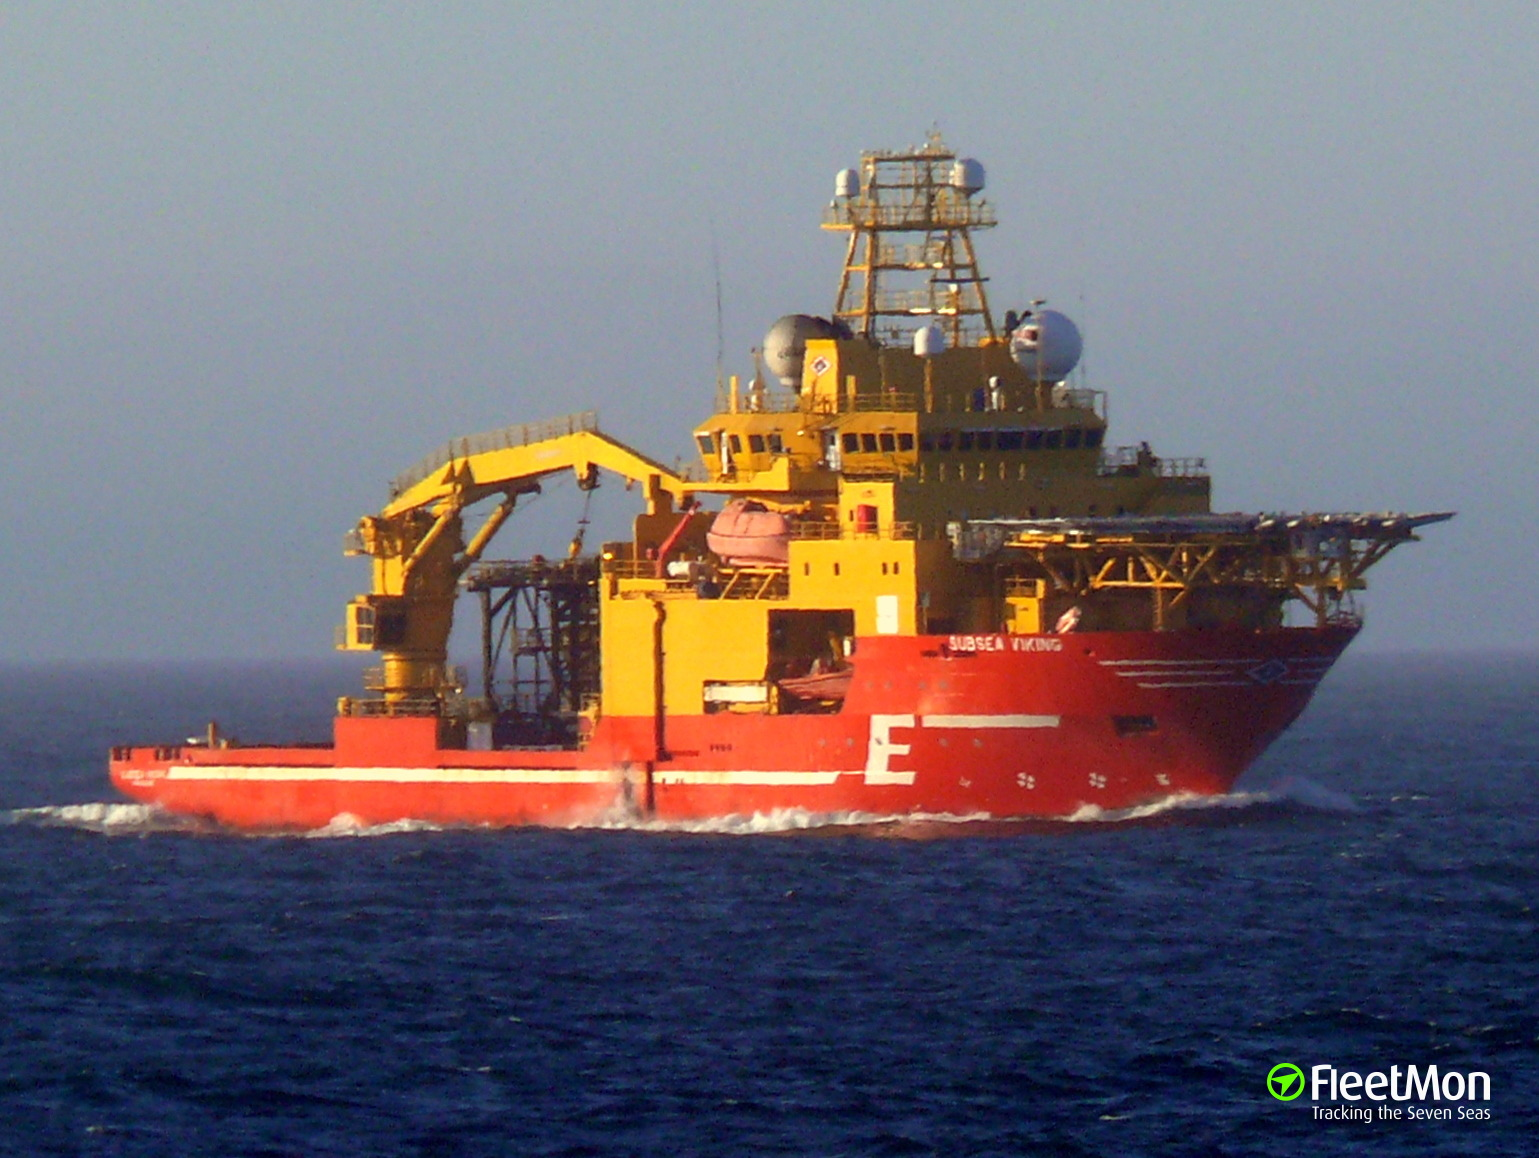 Fire on board of offshore support vessel Subsea Viking, Orkneys